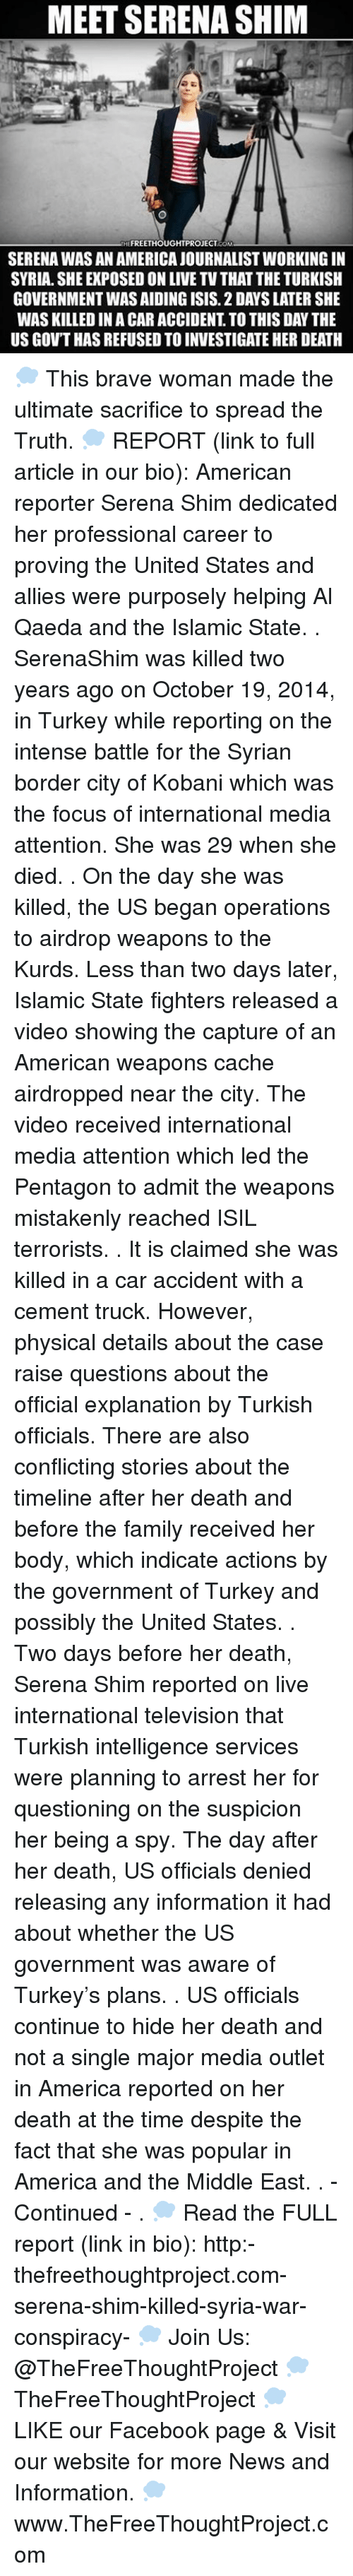 Memes, Turkey, and 🤖: MEET SERENA SHIM  THE FREETHOUGHTPROJECT  OM  SERENA WASANAMERICAJOURNALISTWORKING IN  SYRIA. SHE EXPOSED ON LIVE TV THAT THE TURKISH  GOVERNMENT WASAIDING ISIS. 2 DAYS LATER SHE  WAS KILLED IN ACAR ACCIDENT TO THIS DAYTHE  US GOVT HAS REFUSED TO INVESTIGATE HER DEATH 💭 This brave woman made the ultimate sacrifice to spread the Truth. 💭 REPORT (link to full article in our bio): American reporter Serena Shim dedicated her professional career to proving the United States and allies were purposely helping Al Qaeda and the Islamic State. . SerenaShim was killed two years ago on October 19, 2014, in Turkey while reporting on the intense battle for the Syrian border city of Kobani which was the focus of international media attention. She was 29 when she died. . On the day she was killed, the US began operations to airdrop weapons to the Kurds. Less than two days later, Islamic State fighters released a video showing the capture of an American weapons cache airdropped near the city. The video received international media attention which led the Pentagon to admit the weapons mistakenly reached ISIL terrorists. . It is claimed she was killed in a car accident with a cement truck. However, physical details about the case raise questions about the official explanation by Turkish officials. There are also conflicting stories about the timeline after her death and before the family received her body, which indicate actions by the government of Turkey and possibly the United States. . Two days before her death, Serena Shim reported on live international television that Turkish intelligence services were planning to arrest her for questioning on the suspicion her being a spy. The day after her death, US officials denied releasing any information it had about whether the US government was aware of Turkey's plans. . US officials continue to hide her death and not a single major media outlet in America reported on her death at the time despite the fact that she was popular in America and the Middle East. . - Continued - . 💭 Read the FULL report (link in bio): http:-thefreethoughtproject.com-serena-shim-killed-syria-war-conspiracy- 💭 Join Us: @TheFreeThoughtProject 💭 TheFreeThoughtProject 💭 LIKE our Facebook page & Visit our website for more News and Information. 💭 www.TheFreeThoughtProject.com